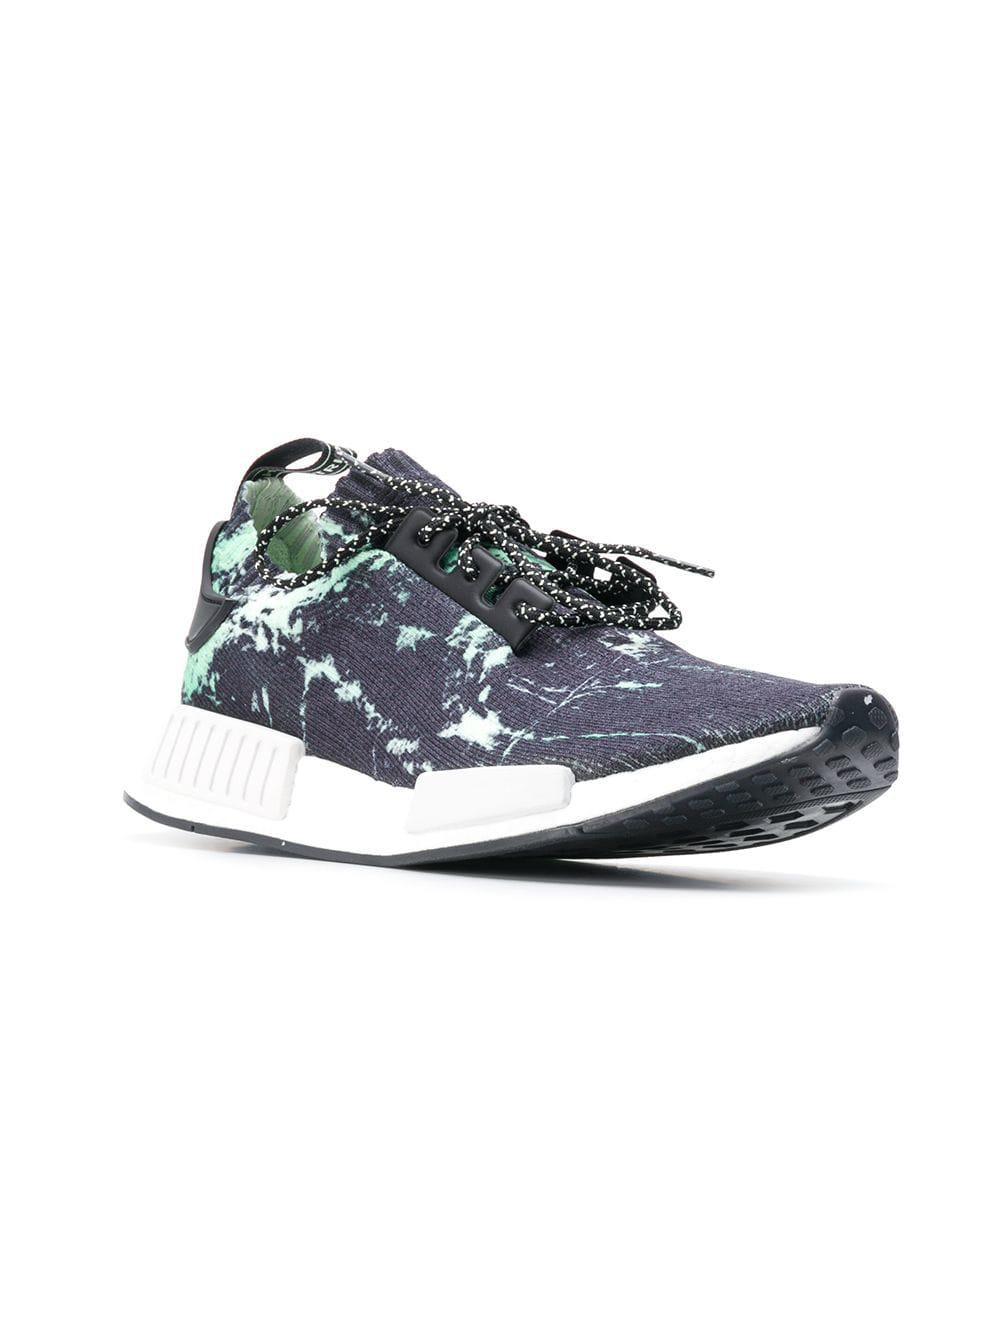 adidas Nmd R1 Marble Primeknit Sneakers in Blue for Men - Lyst 331f47f68